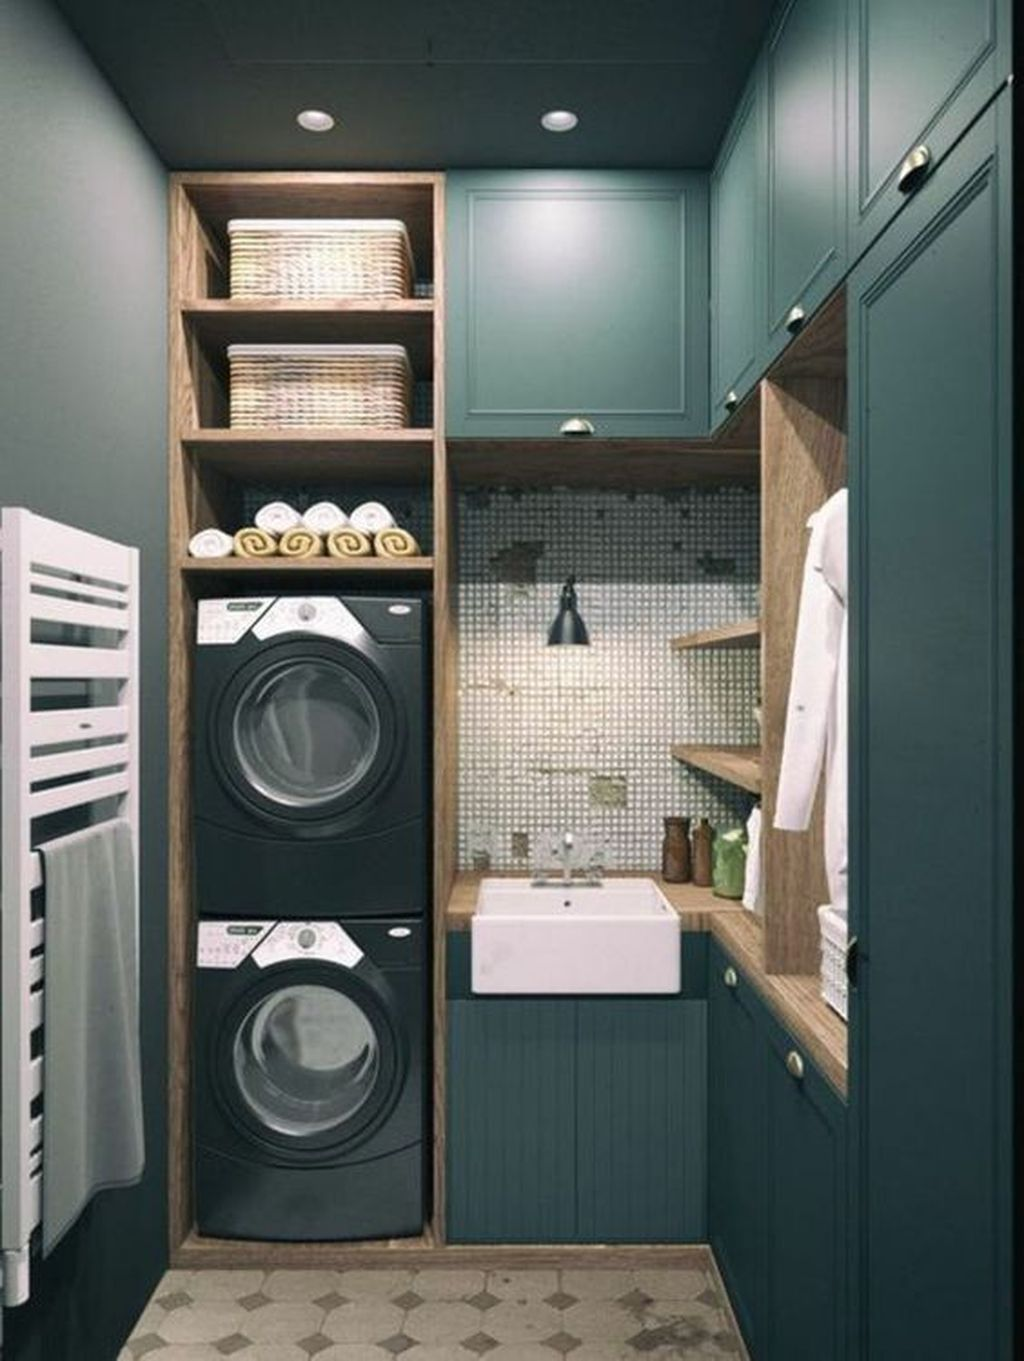 46 simple functional laundry room ideas with images on effectively laundry room decoration ideas easy ideas to inspire you id=14696